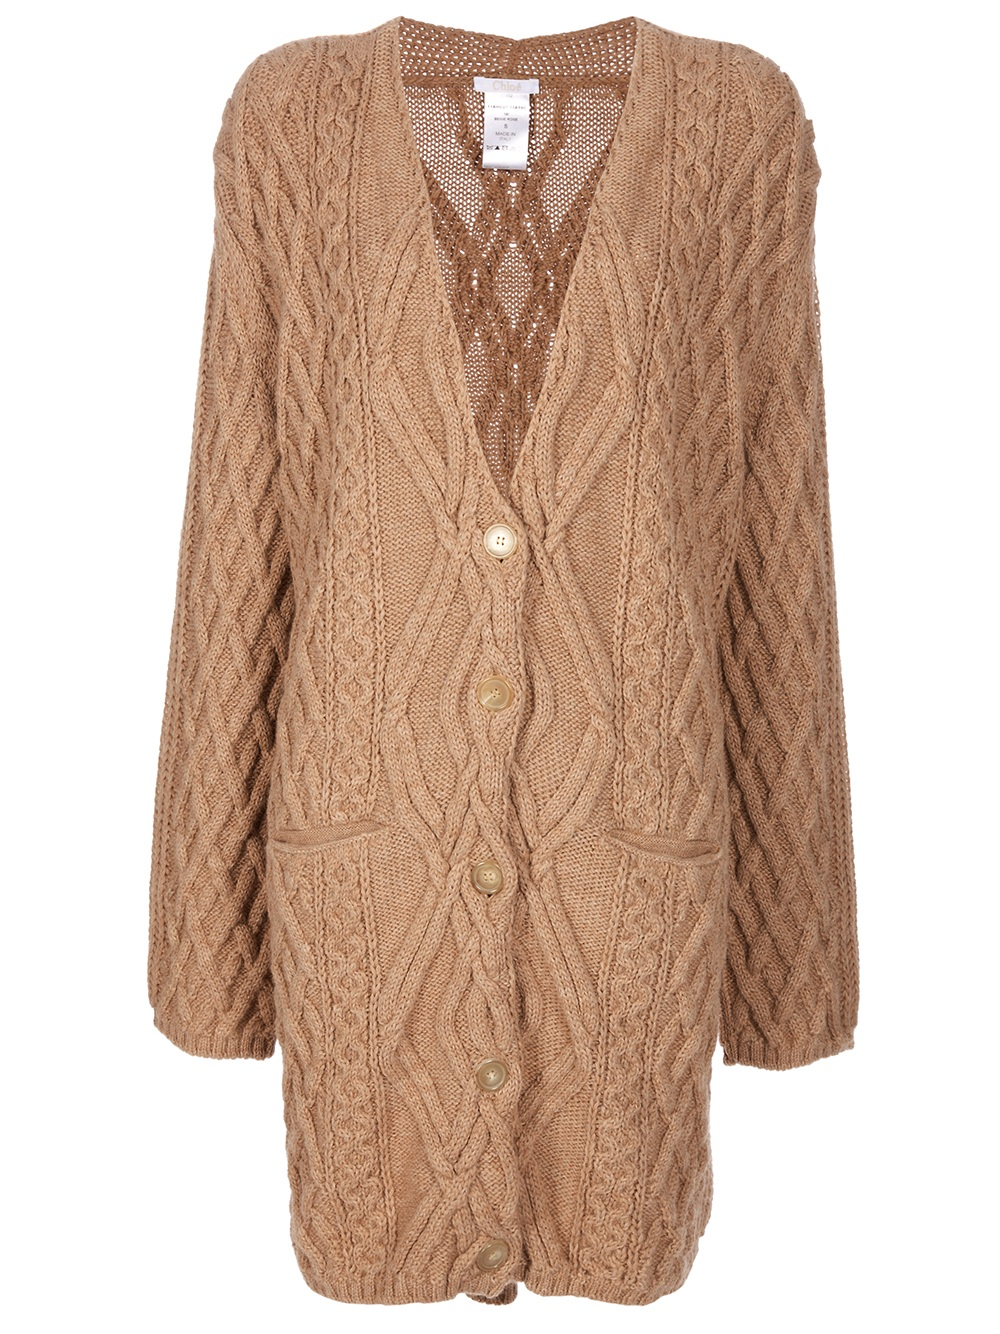 Free shipping & returns on women's sweaters, cardigans, oversized sweaters at hitseparatingfiletransfer.tk Shop hooded cardigans, cowl necks, turtlenecks, cable knits & more from top brands.